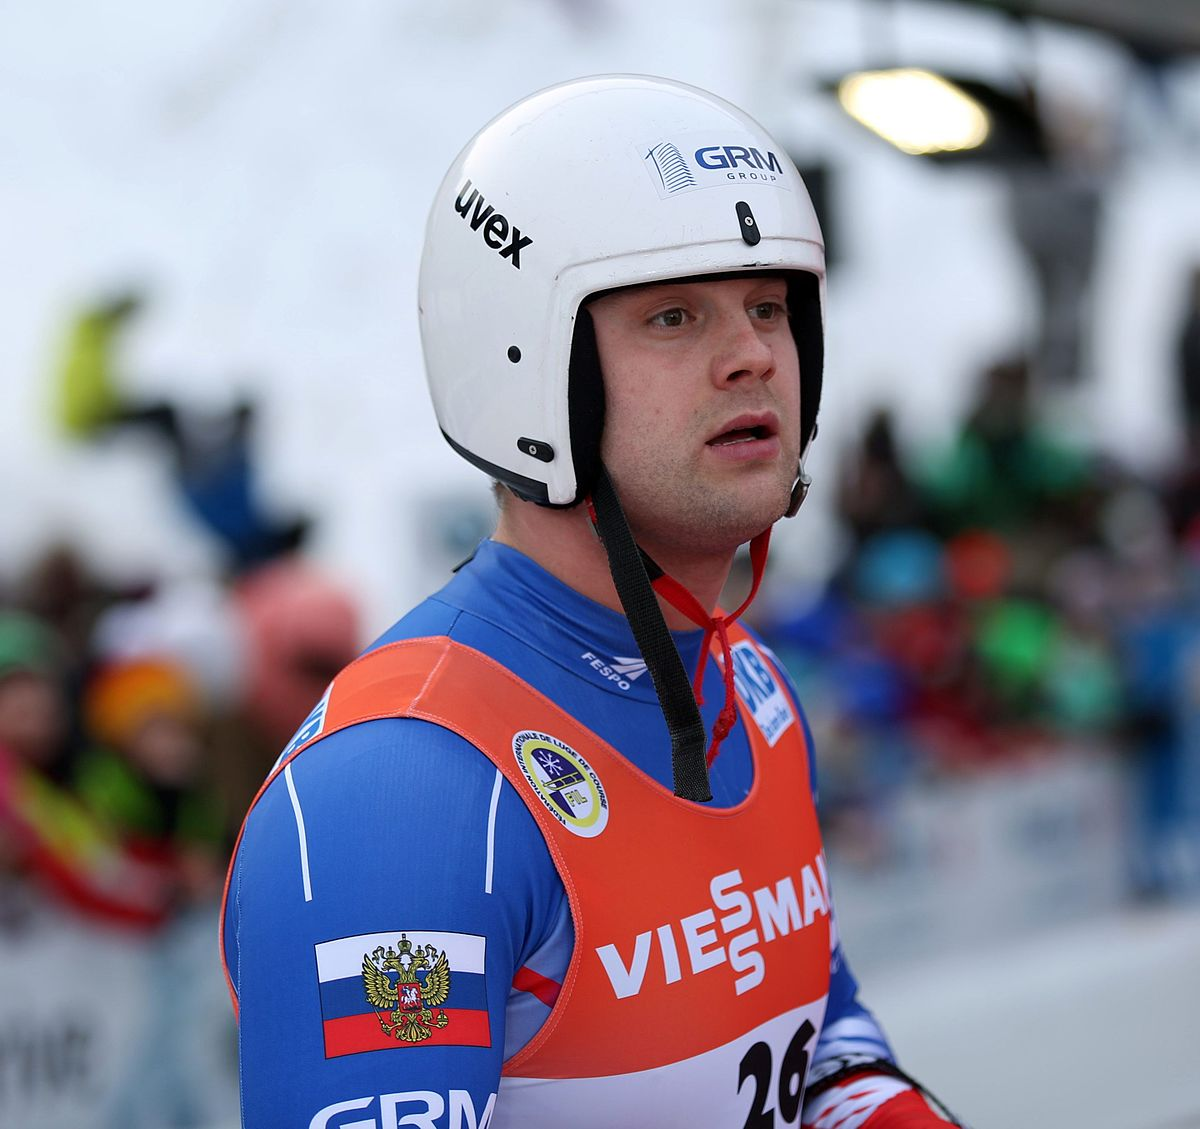 sigulda single guys Our eye — and he's heating up the winter games in more than one way  he  also seems to be an all-around great guy, and therefore totally  great shot of the  men's luge world cup podium yesterday in #sigulda # latvia.